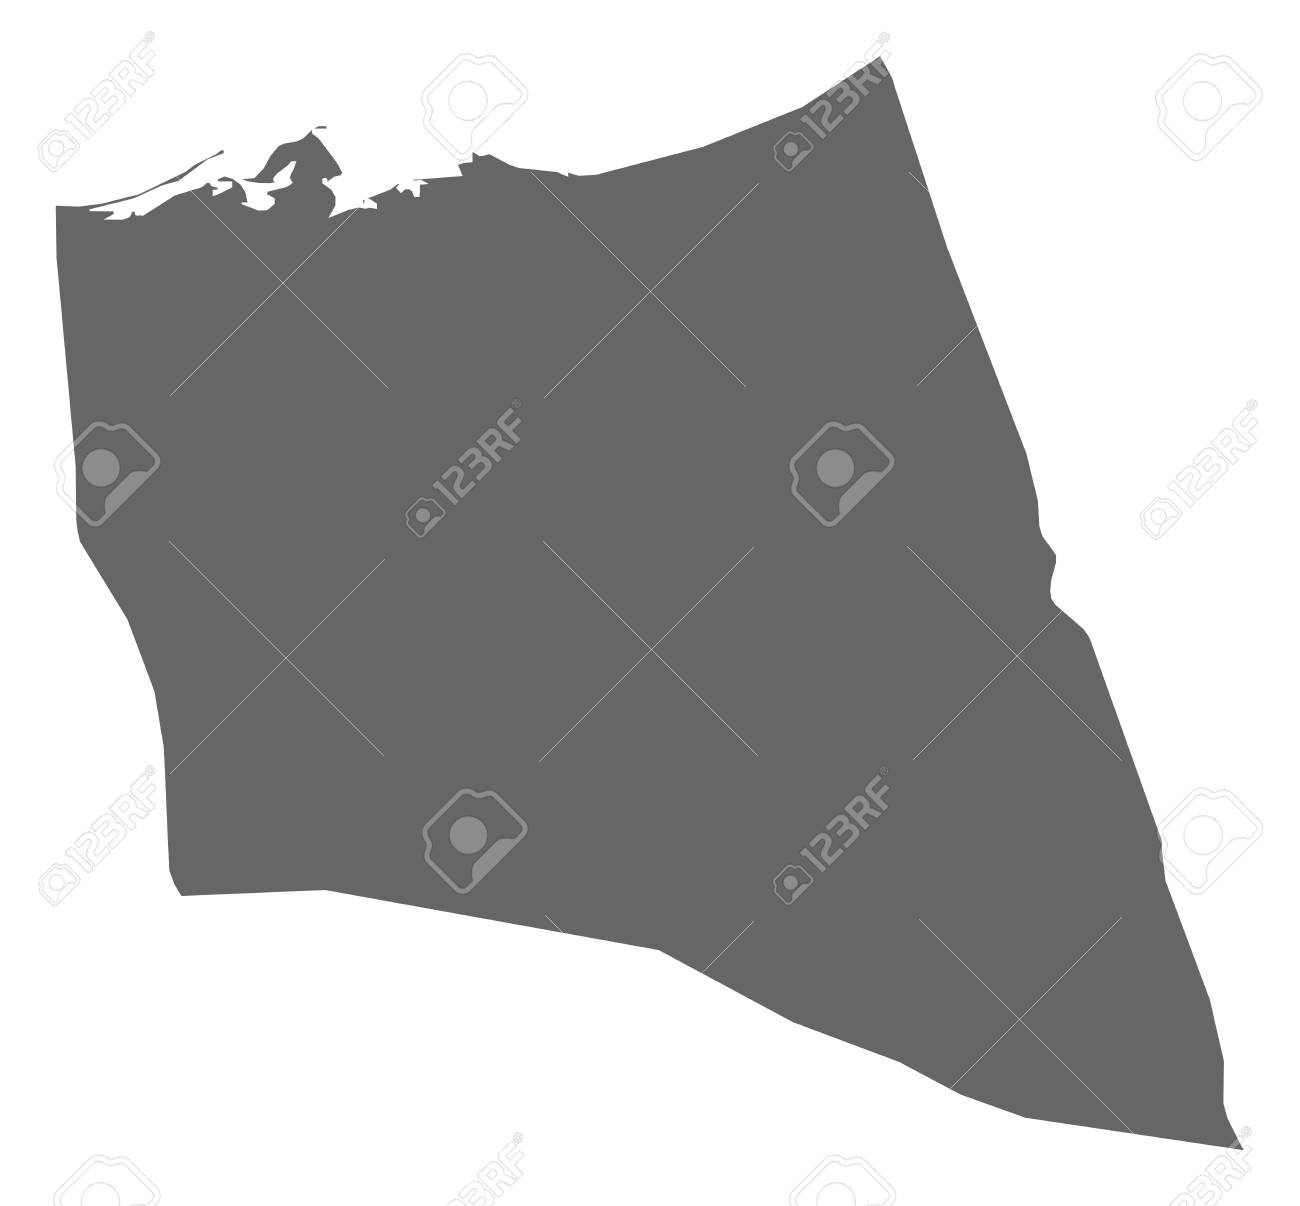 Map of North Sinai, a province of Egypt